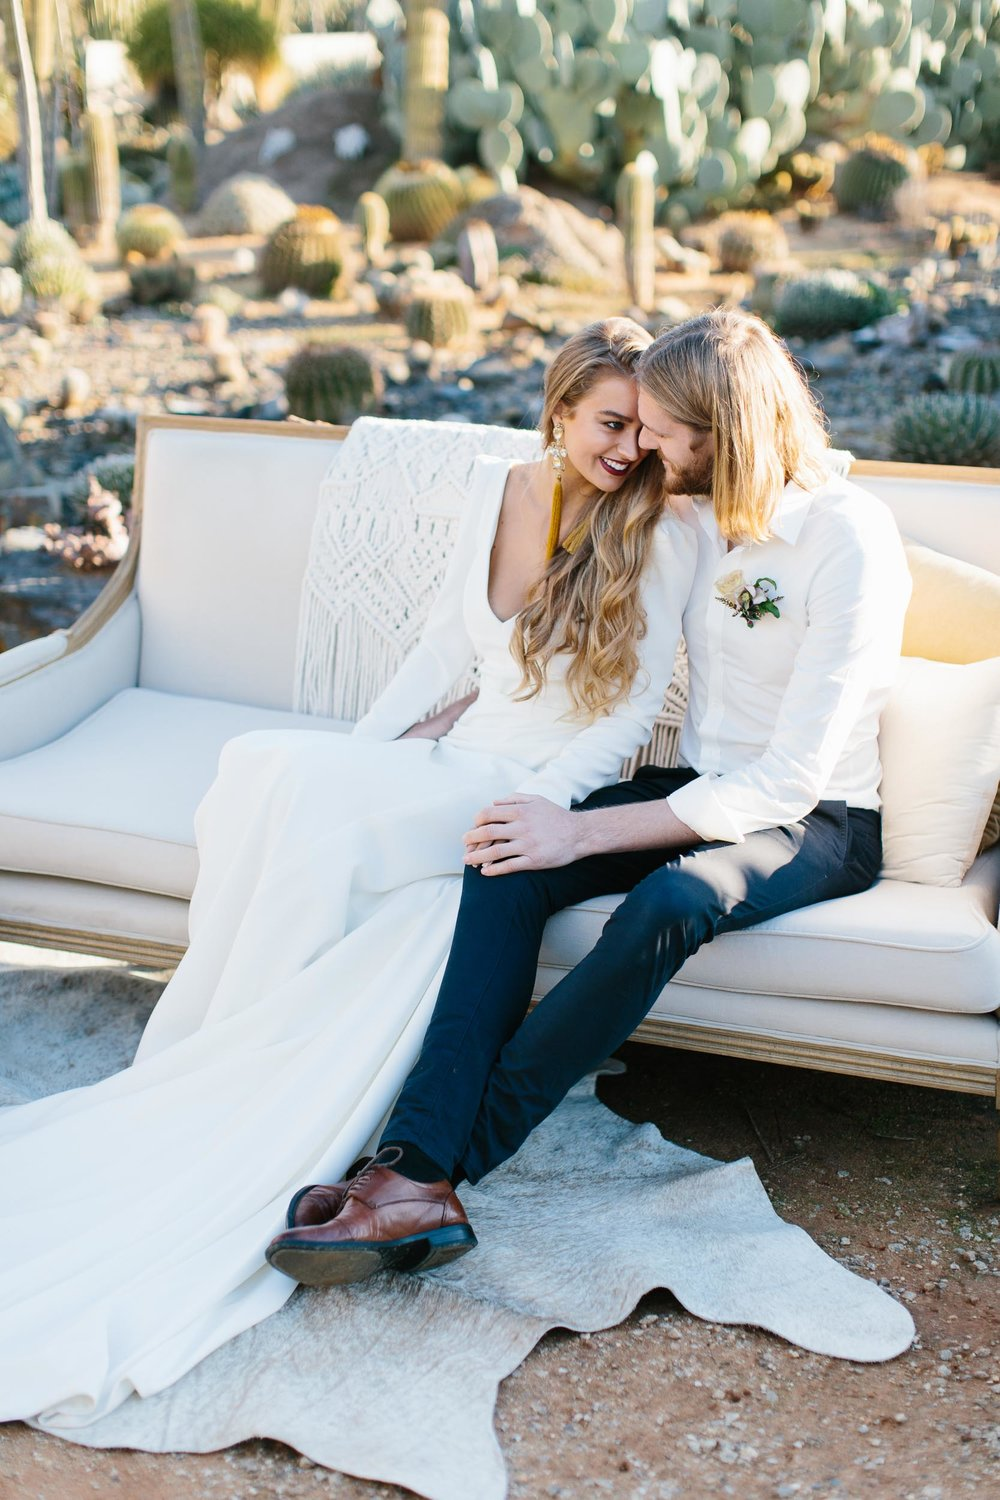 Kas-Richards-Ruby-and-James-Stylist-Cactus-Country-Karen-Willis-Holmes-Bridal-One-Heart-Studios-Boho-Wedding-47.jpg